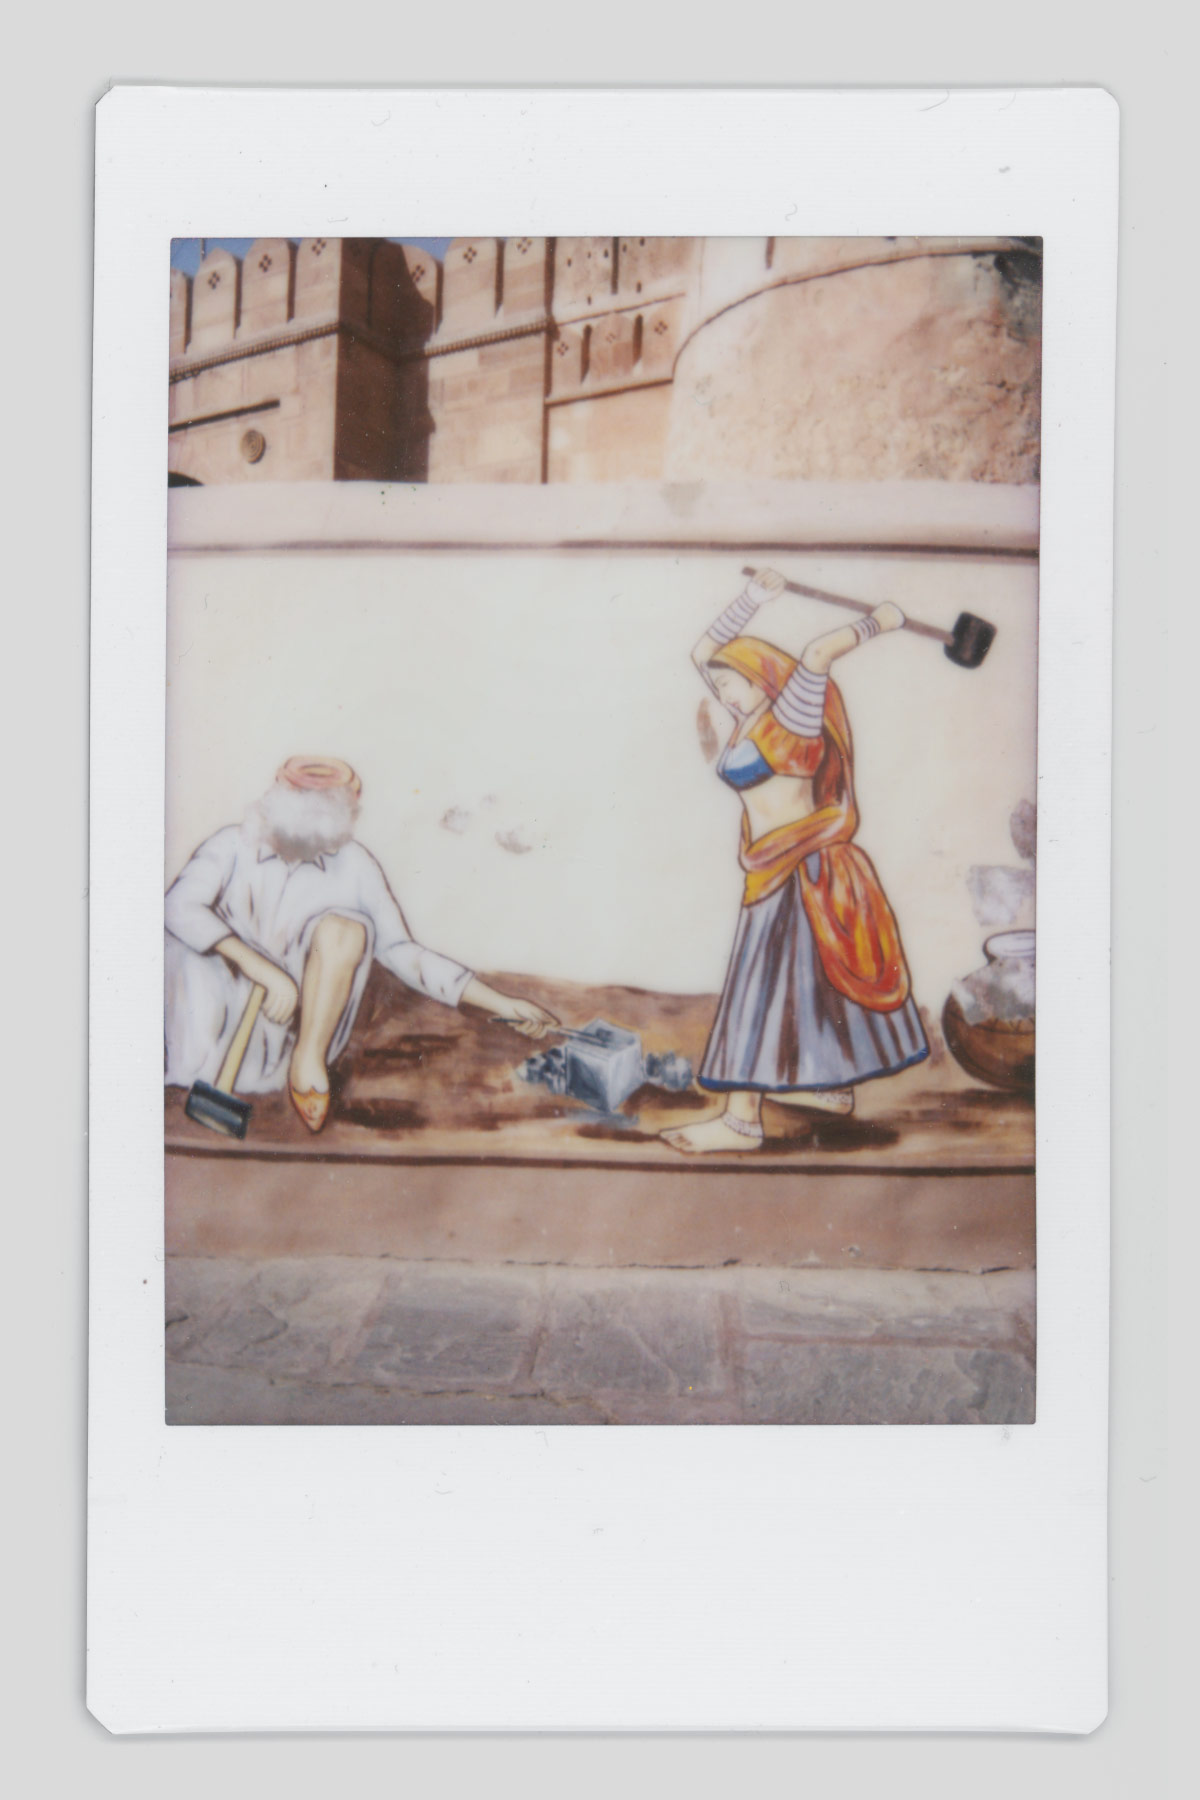 giulio_favotto_india_details_polaroid_instax_05